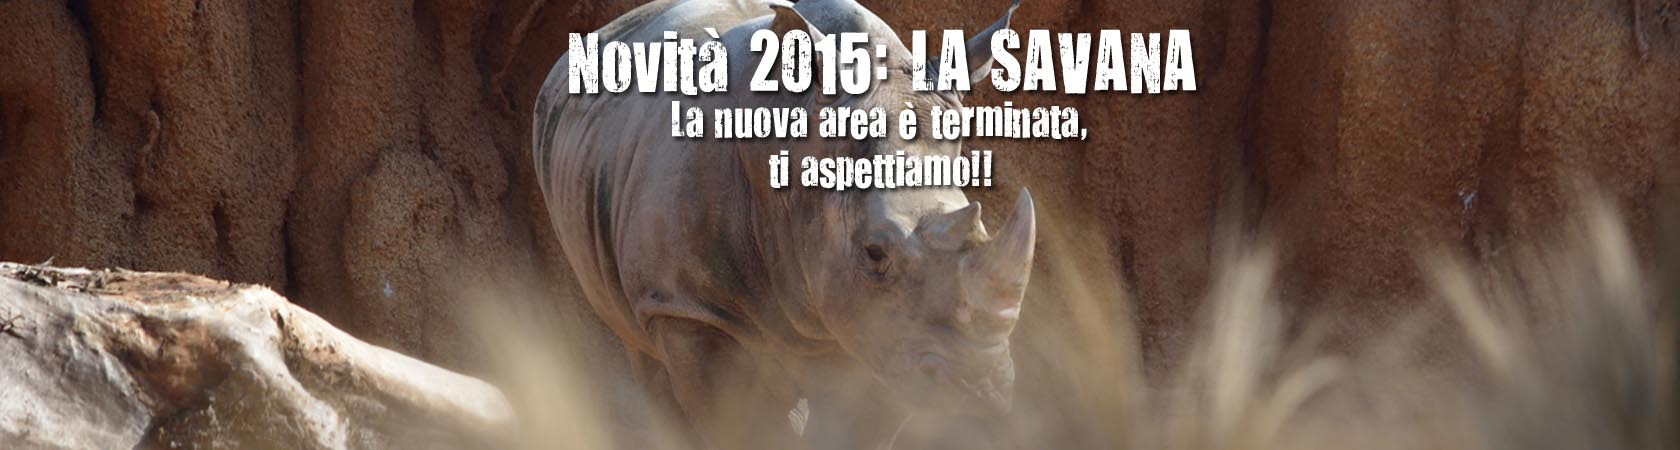 savana-novita-2015-small-ok1